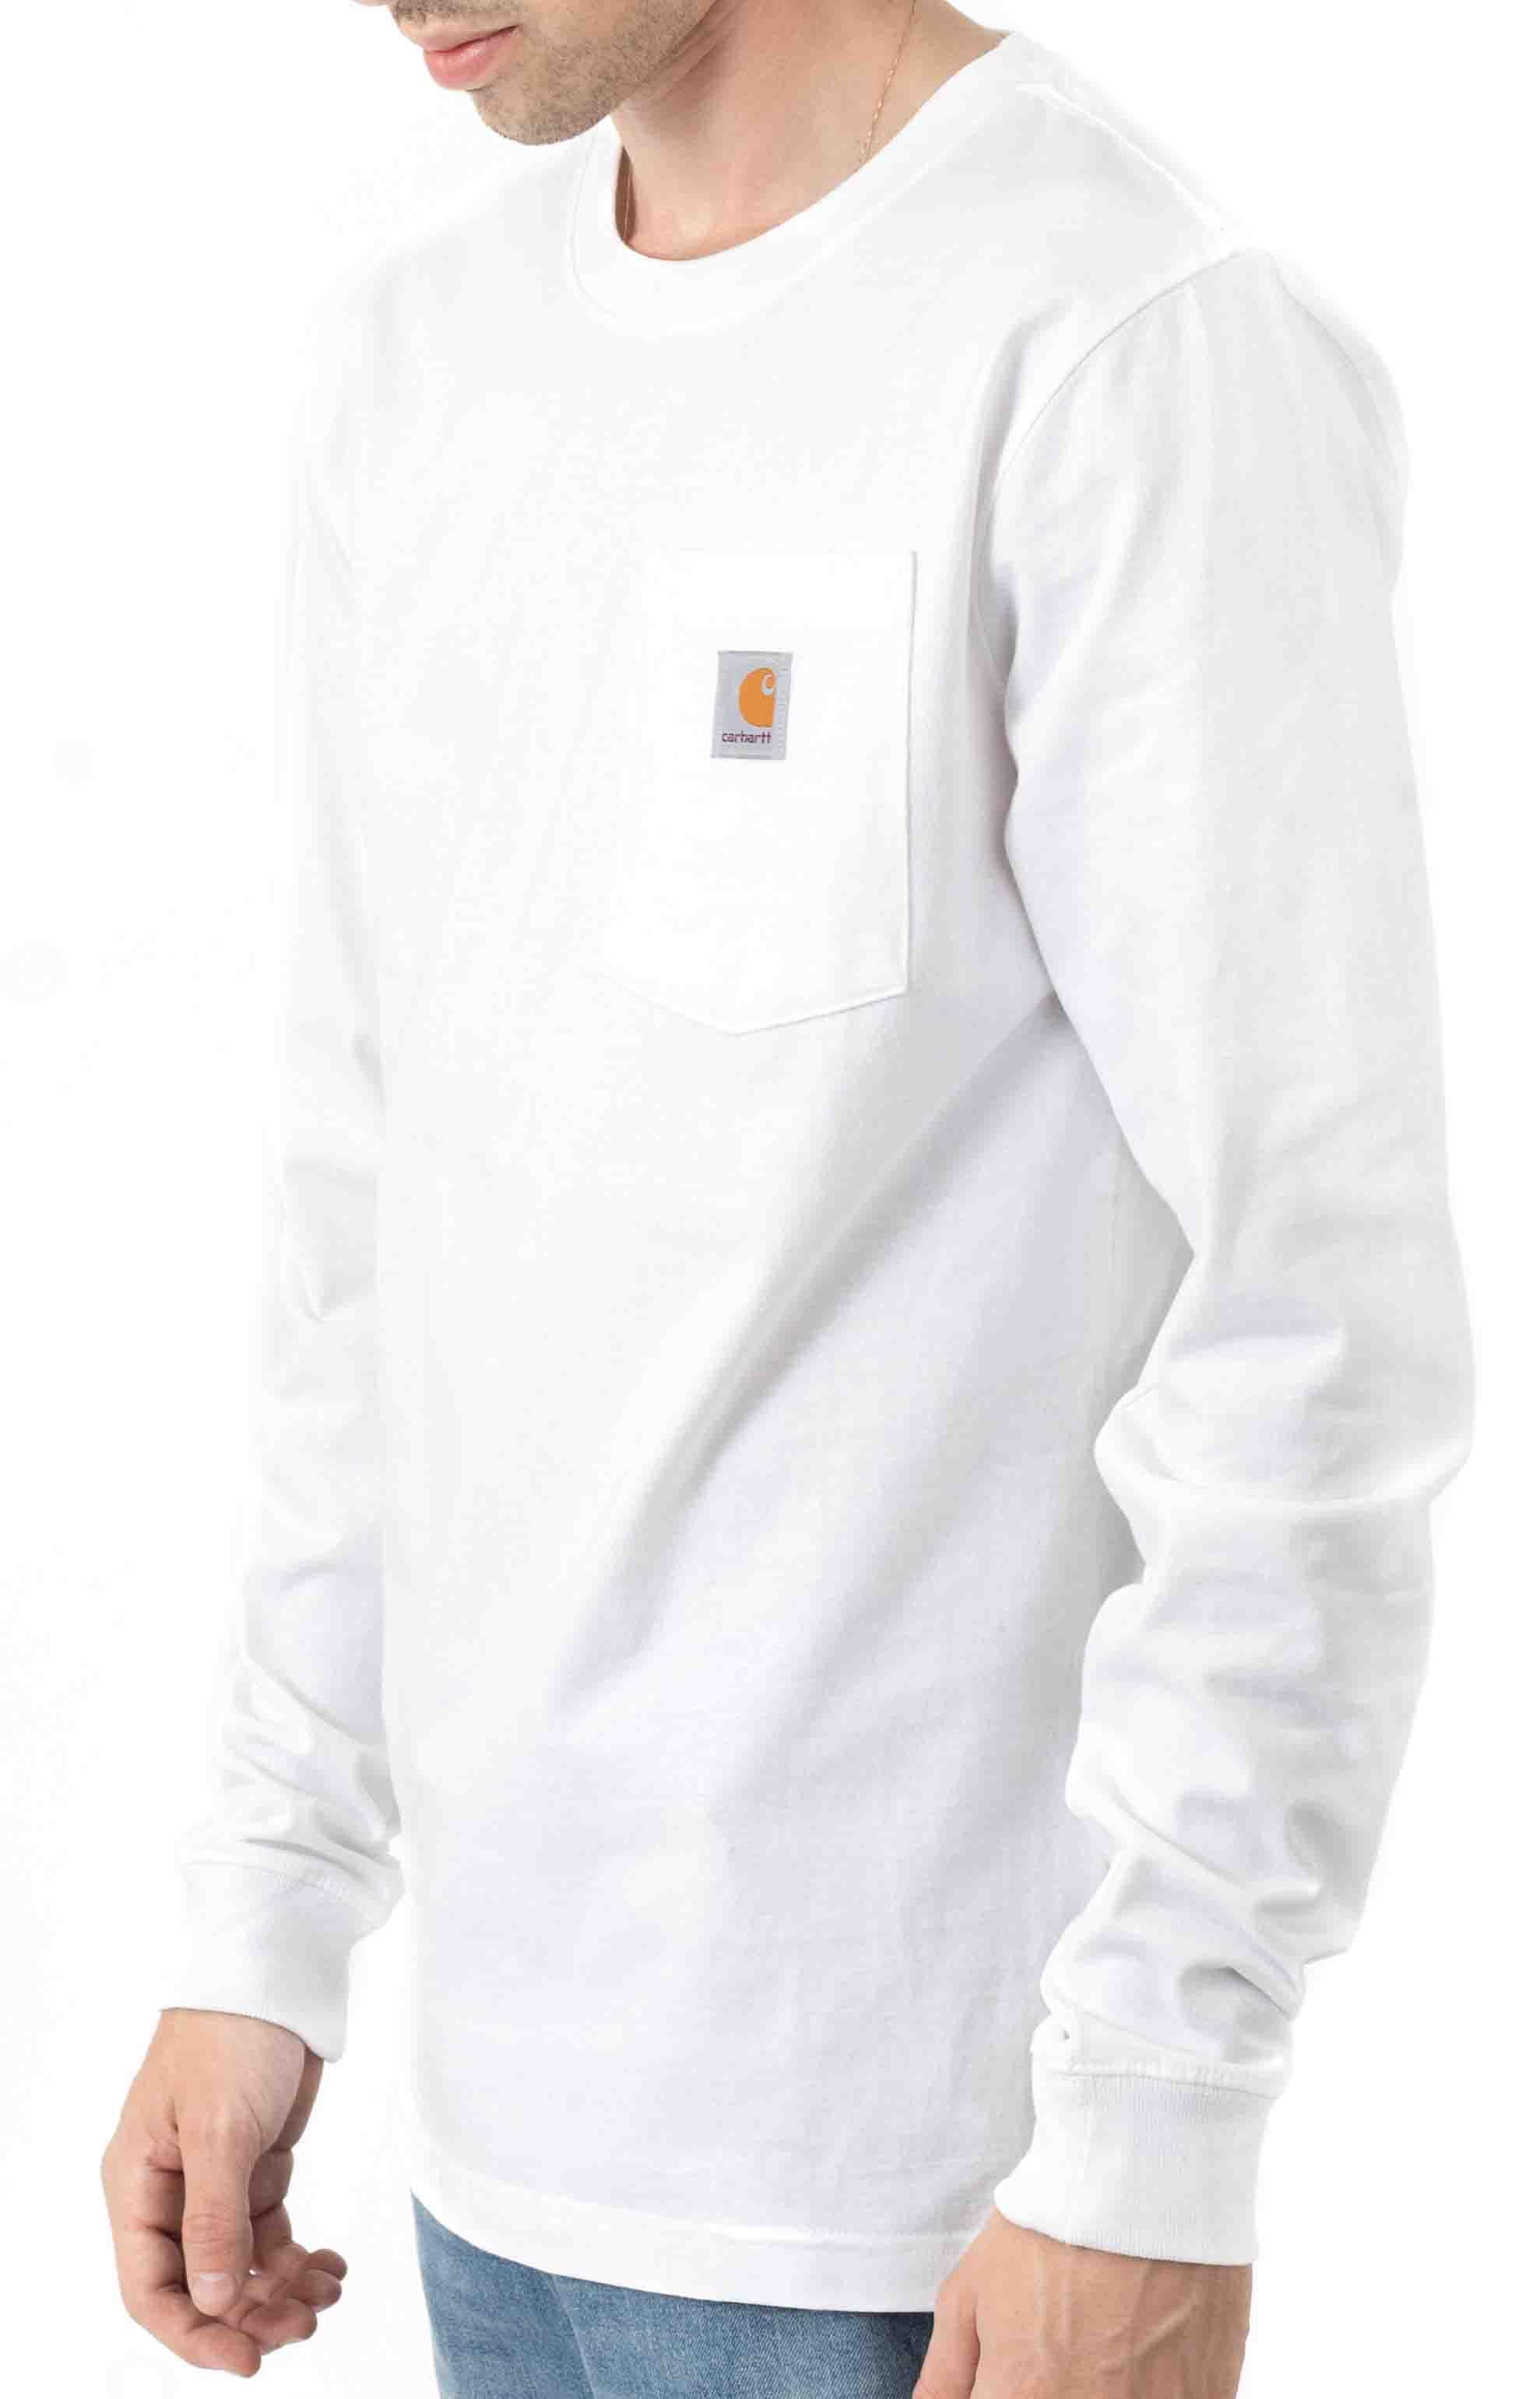 (104895) Relaxed Fit Heavyweight LS Pocket Craftsman Graphic T-Shirt - White  3